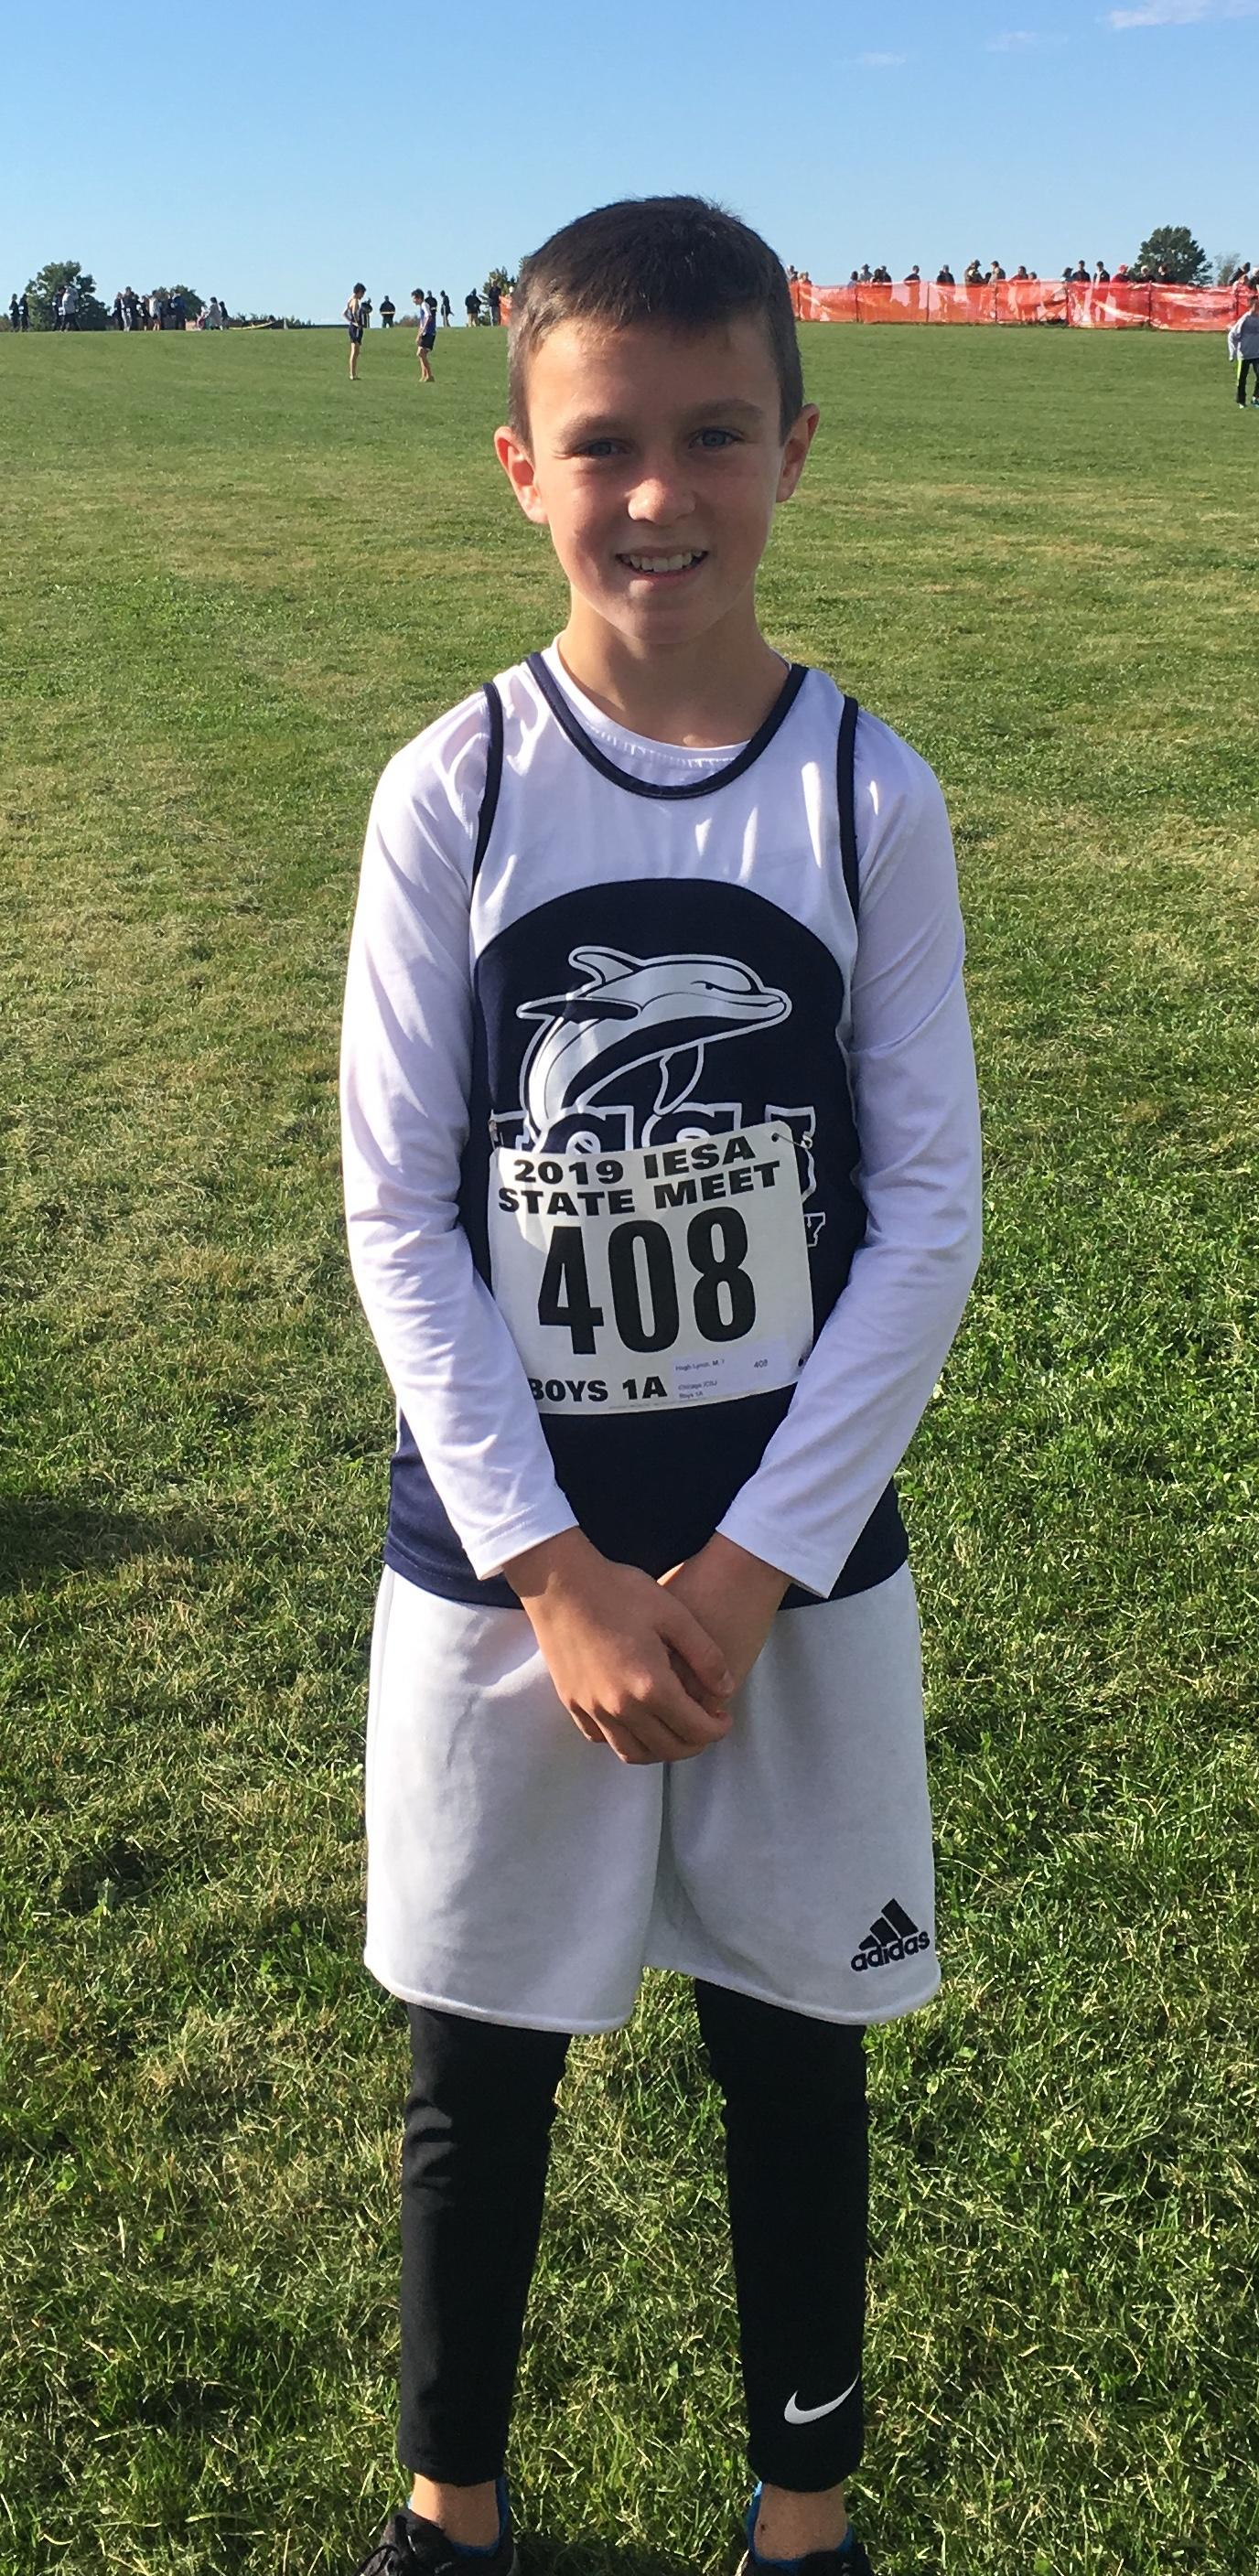 7th Grade state cross country runner